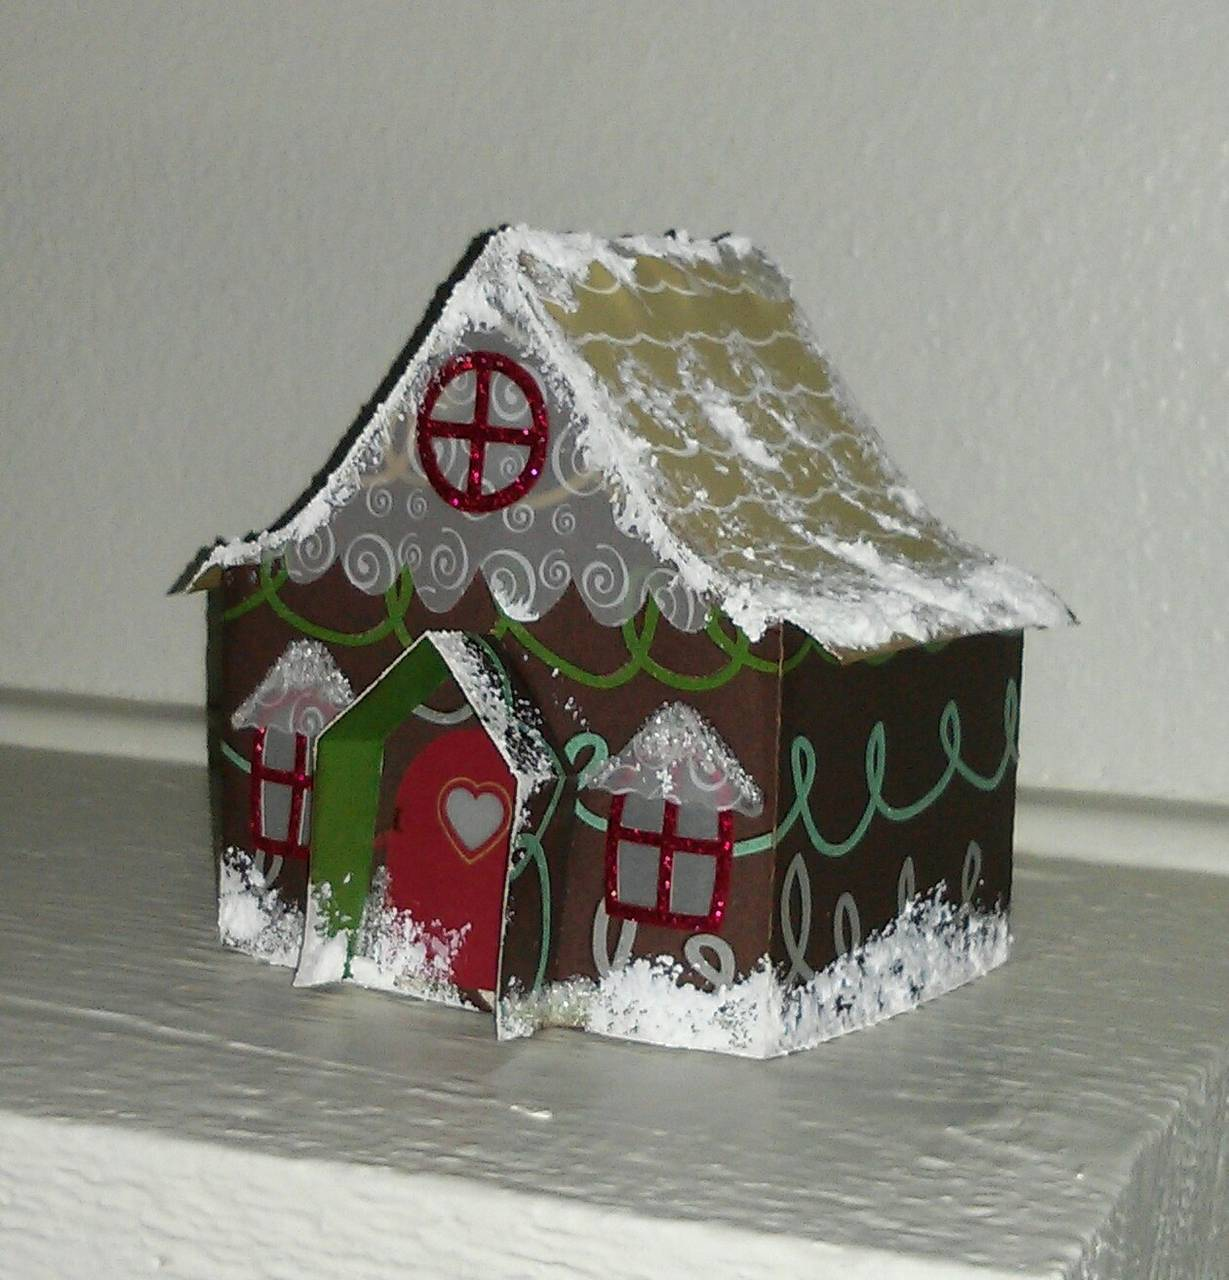 Gingerbread Village - Country Cottage - 2014